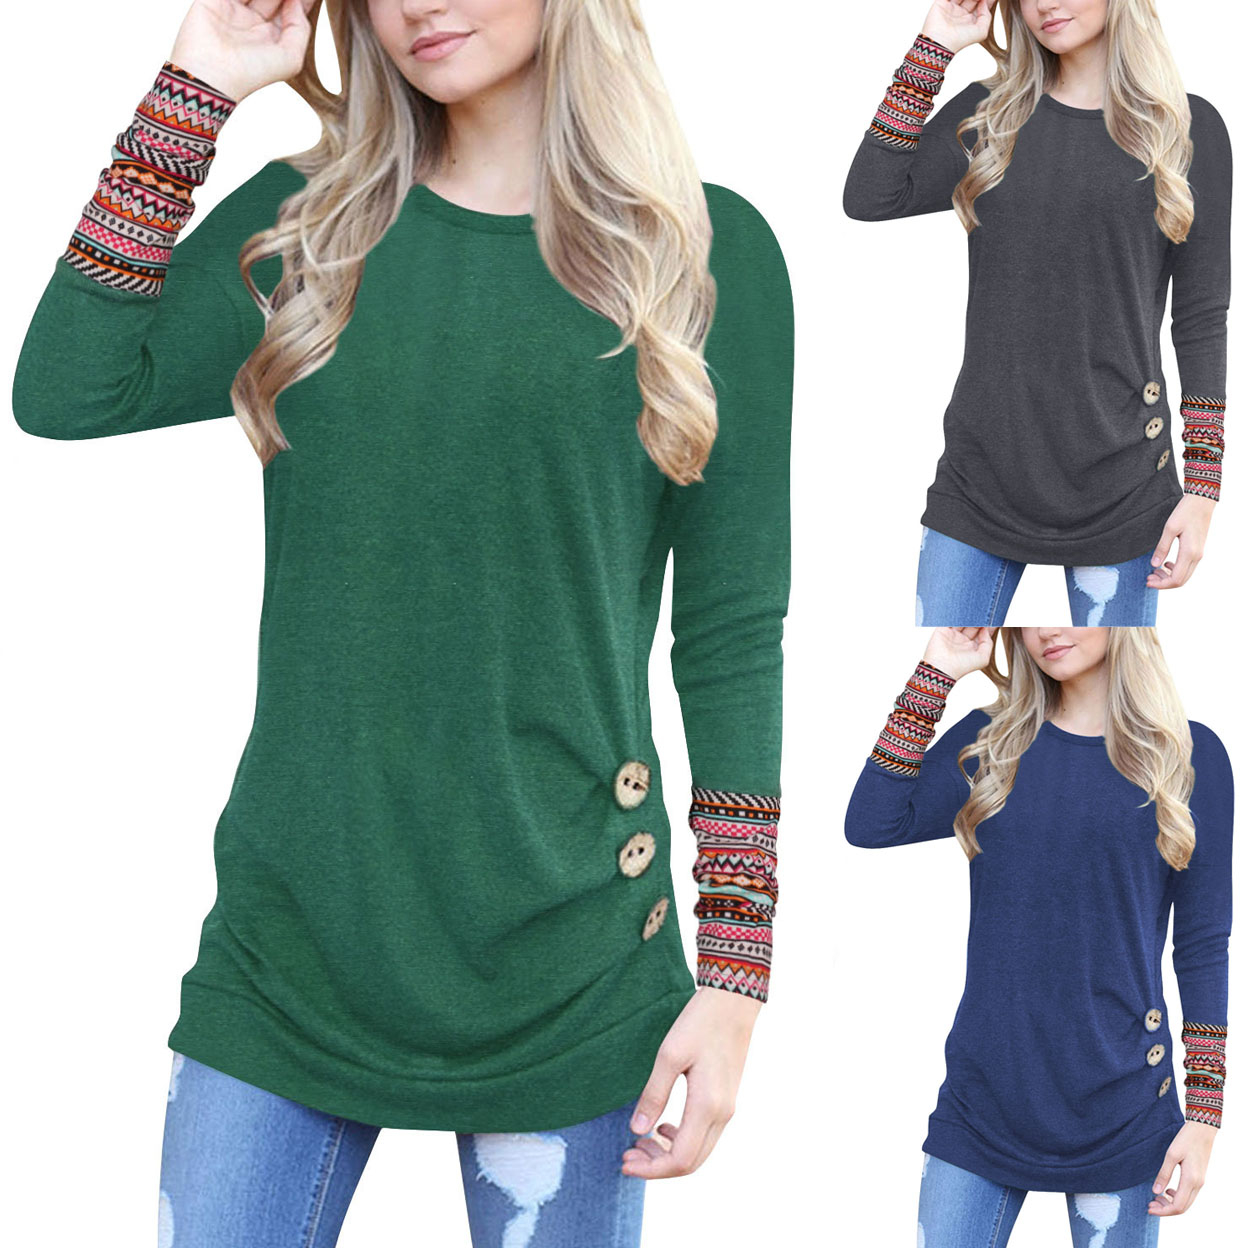 Aztec Sleeve Solid Long Shirt - Green, Small 5a279bcabd5491214935e73f